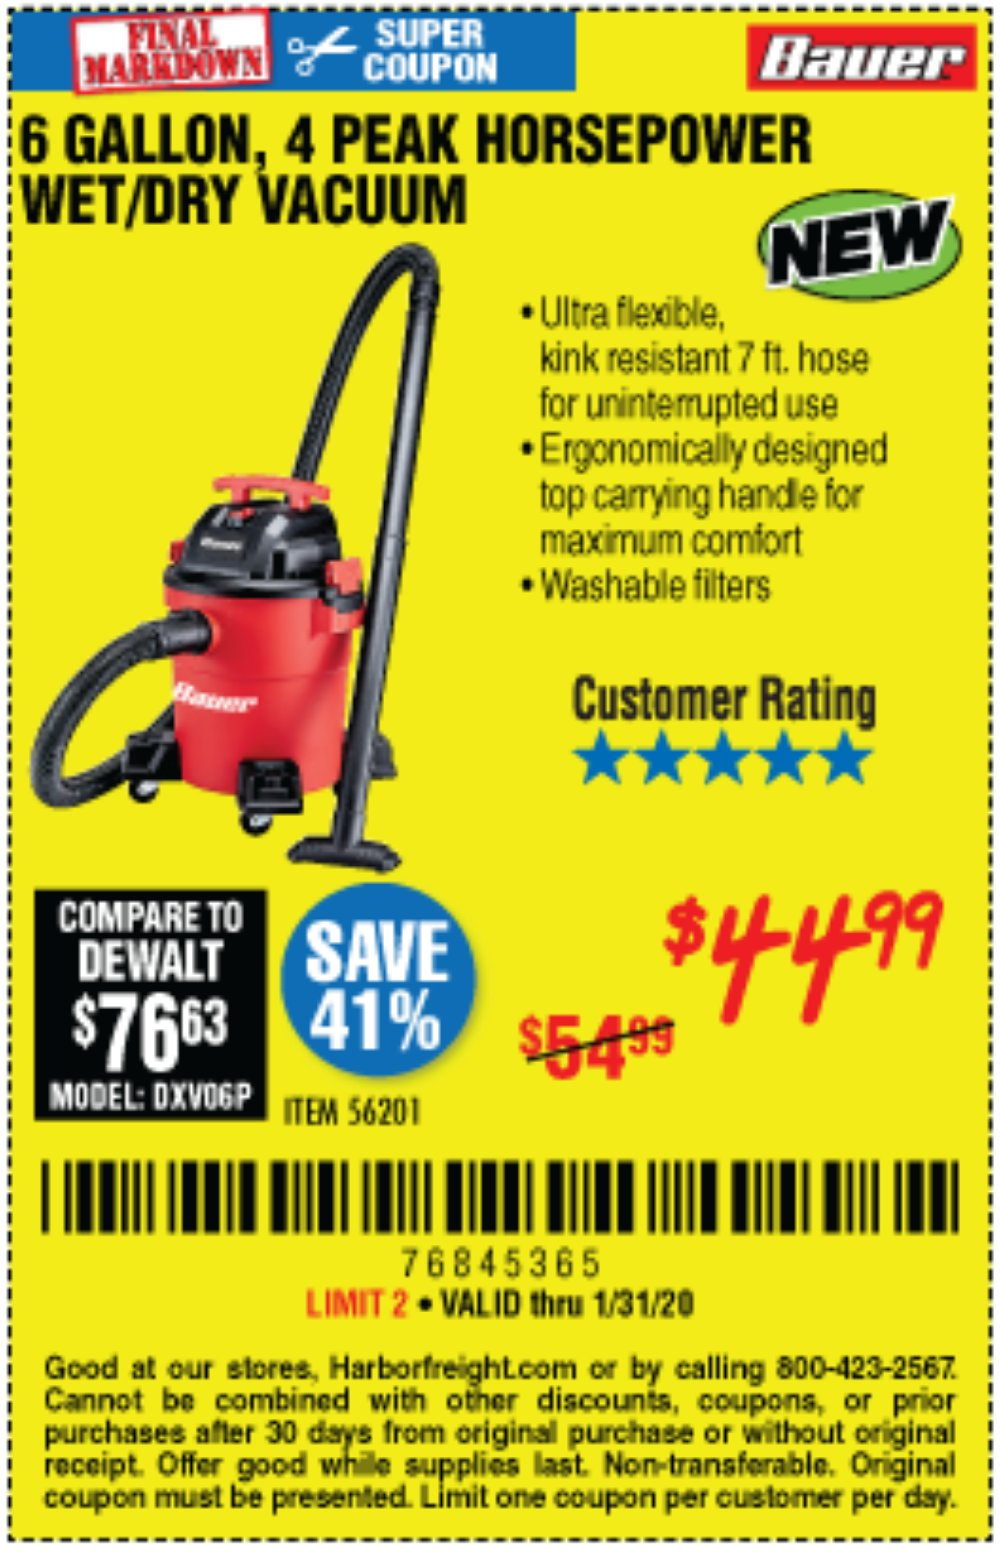 Harbor Freight Coupon, HF Coupons - Bauer 6 Gallon Wet Dry Vacuum